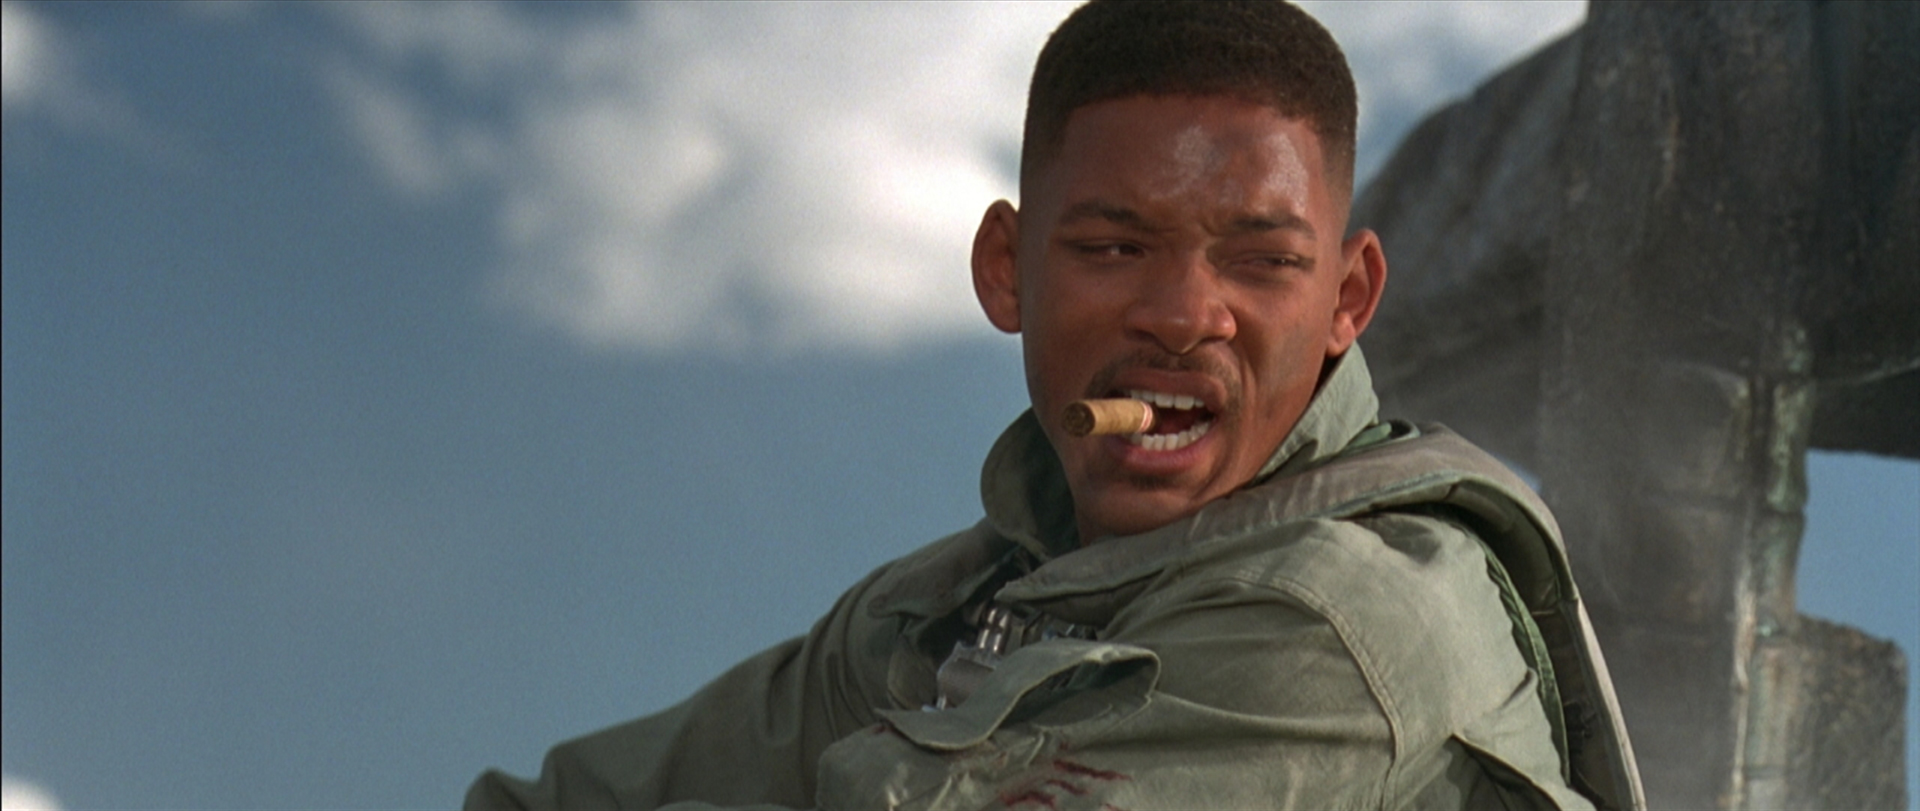 Independence Day Sequel Gets the Green Light!